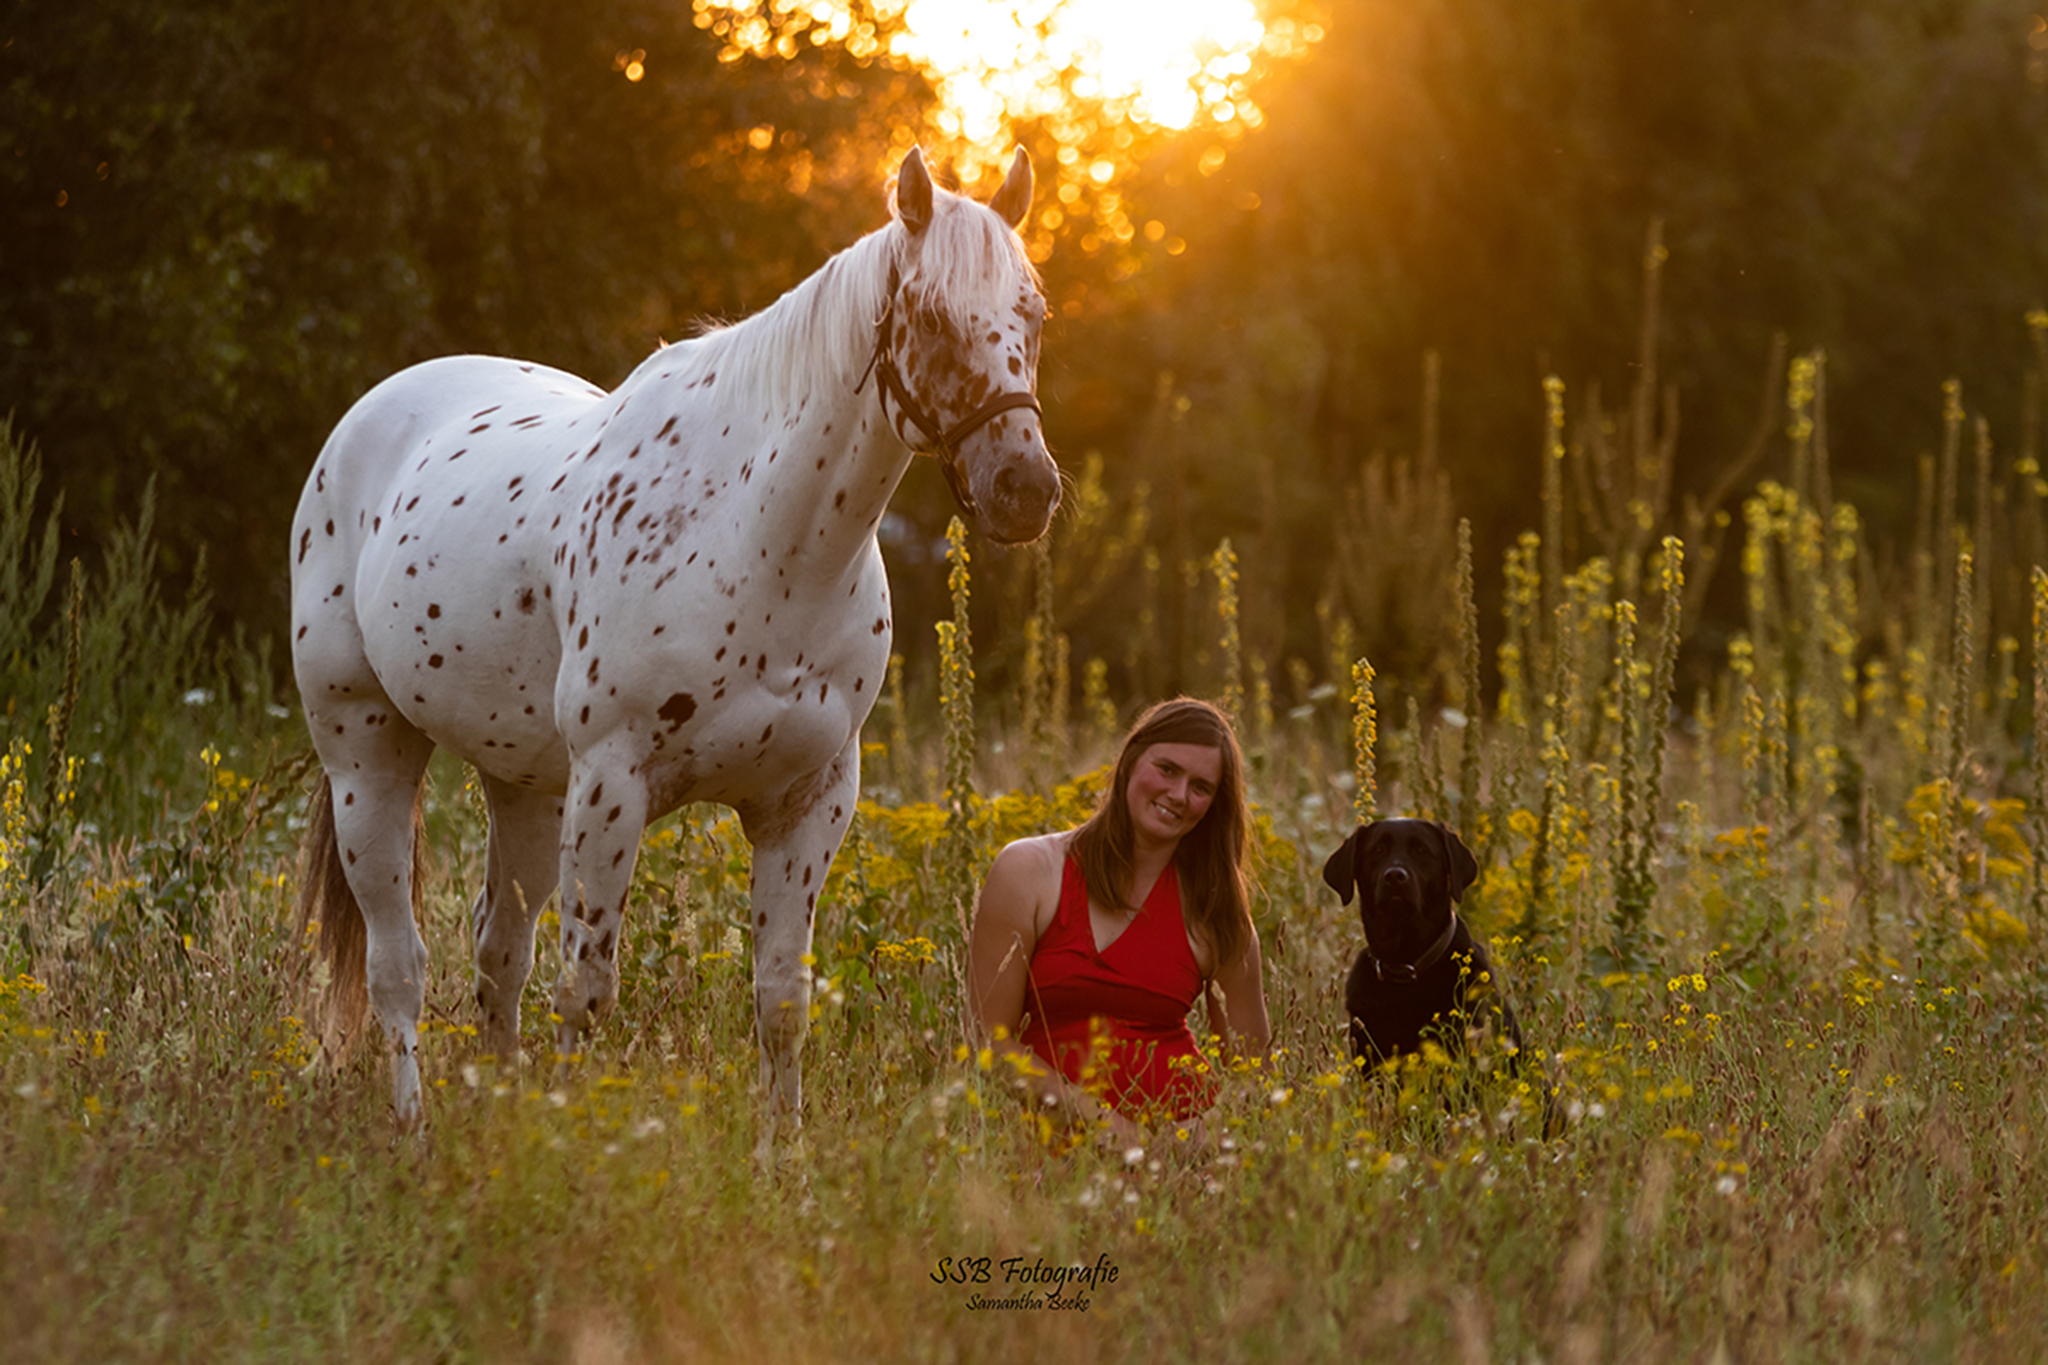 Petra Sallaerts & leni By fitdogs.be